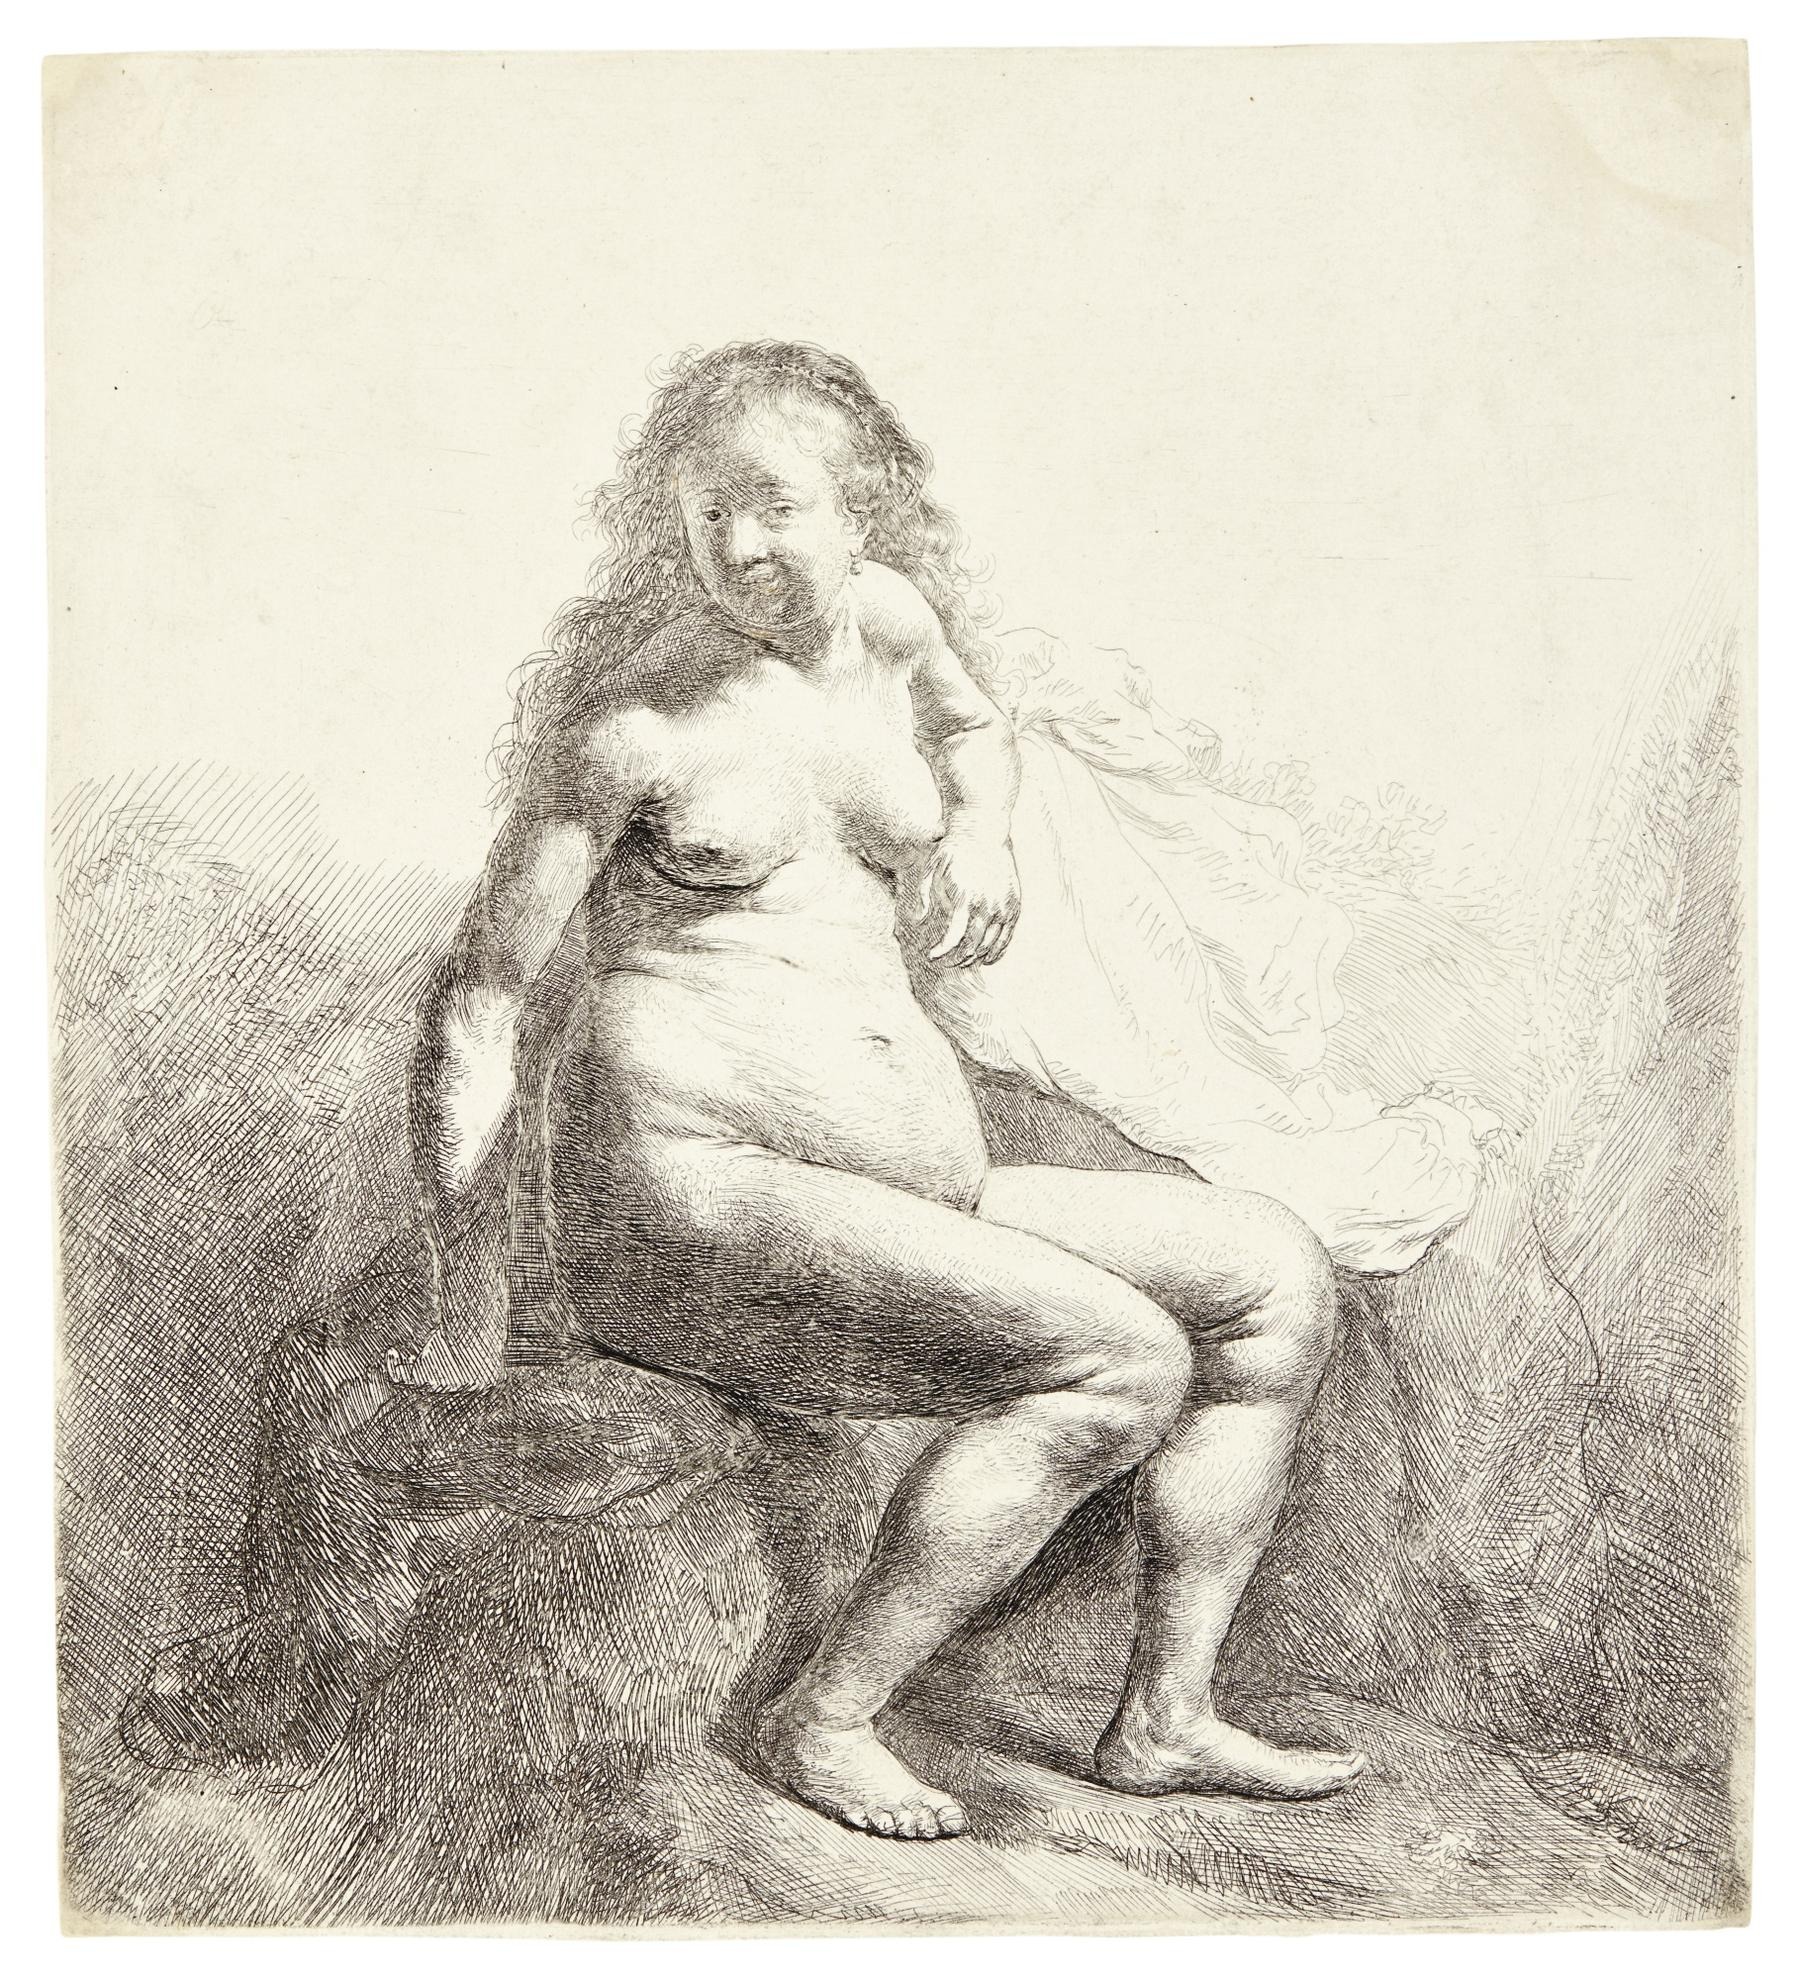 Rembrandt van Rijn-Naked Woman On A Mound (B., Holl. 198; New Holl. 88; H. 43)-1631